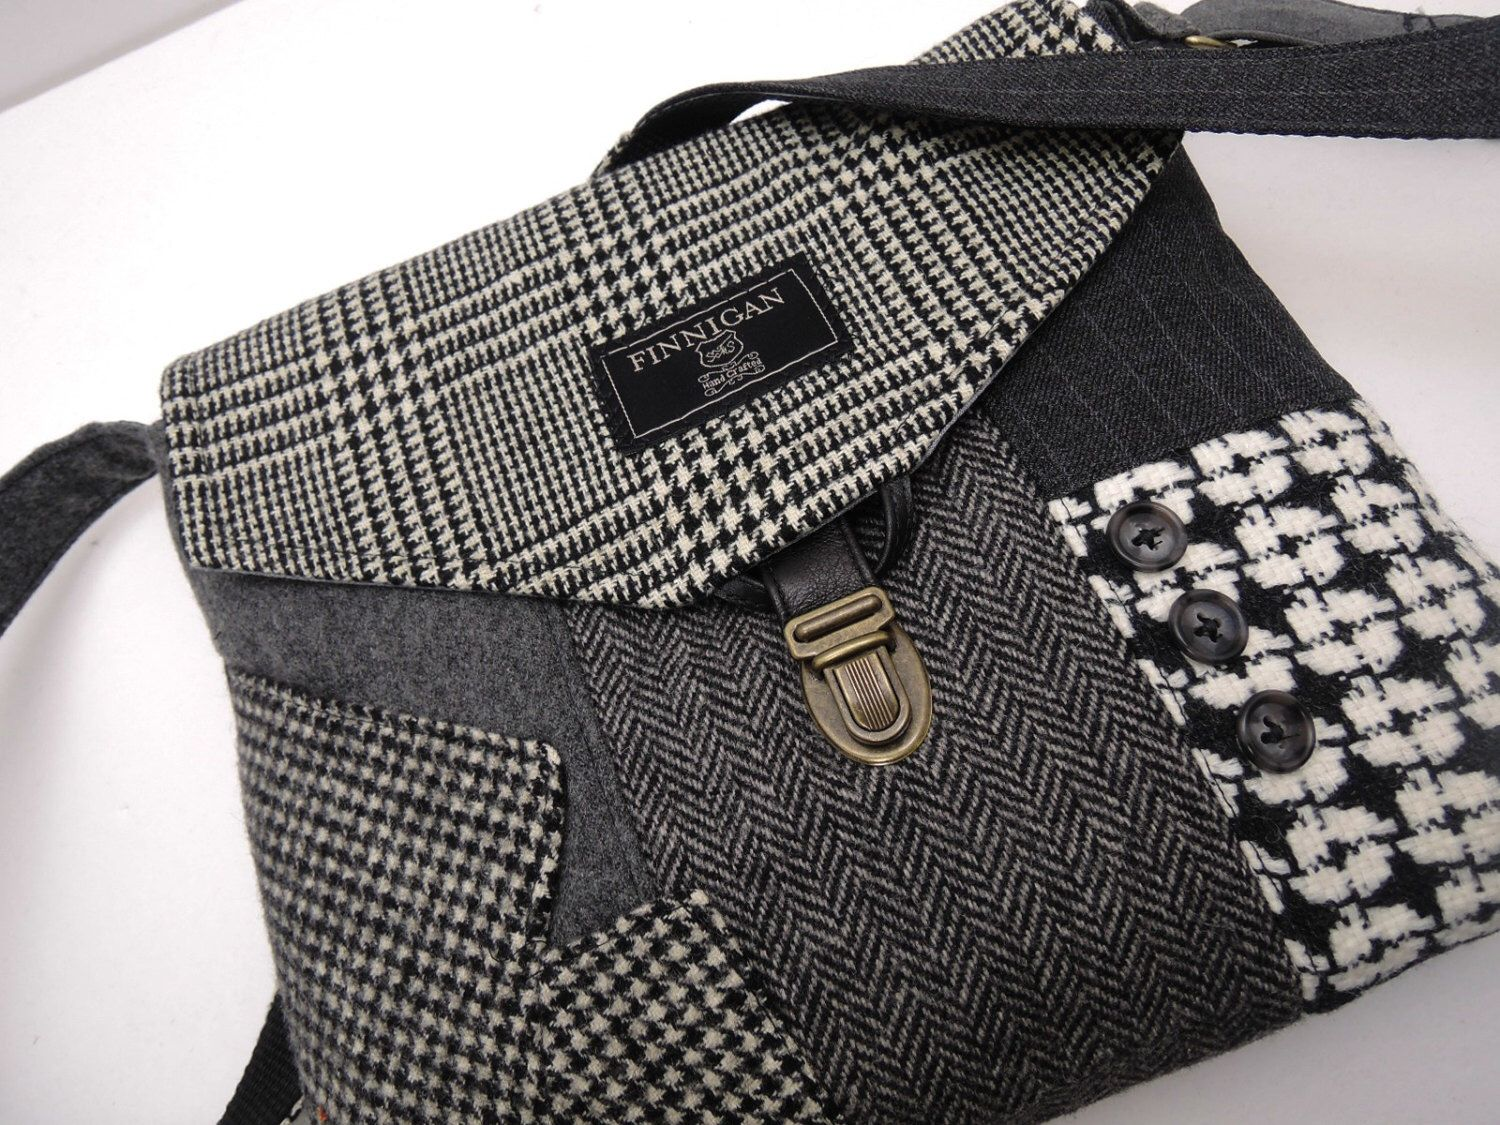 Crossbody Purse, iPhone pocket, Recycled mens suit coat, Black Gray Wool, Eco Friendly, Back to School, Tote bag, Ready to Ship by SewMuchStyle on Etsy https://www.etsy.com/listing/224526929/crossbody-purse-iphone-pocket-recycled